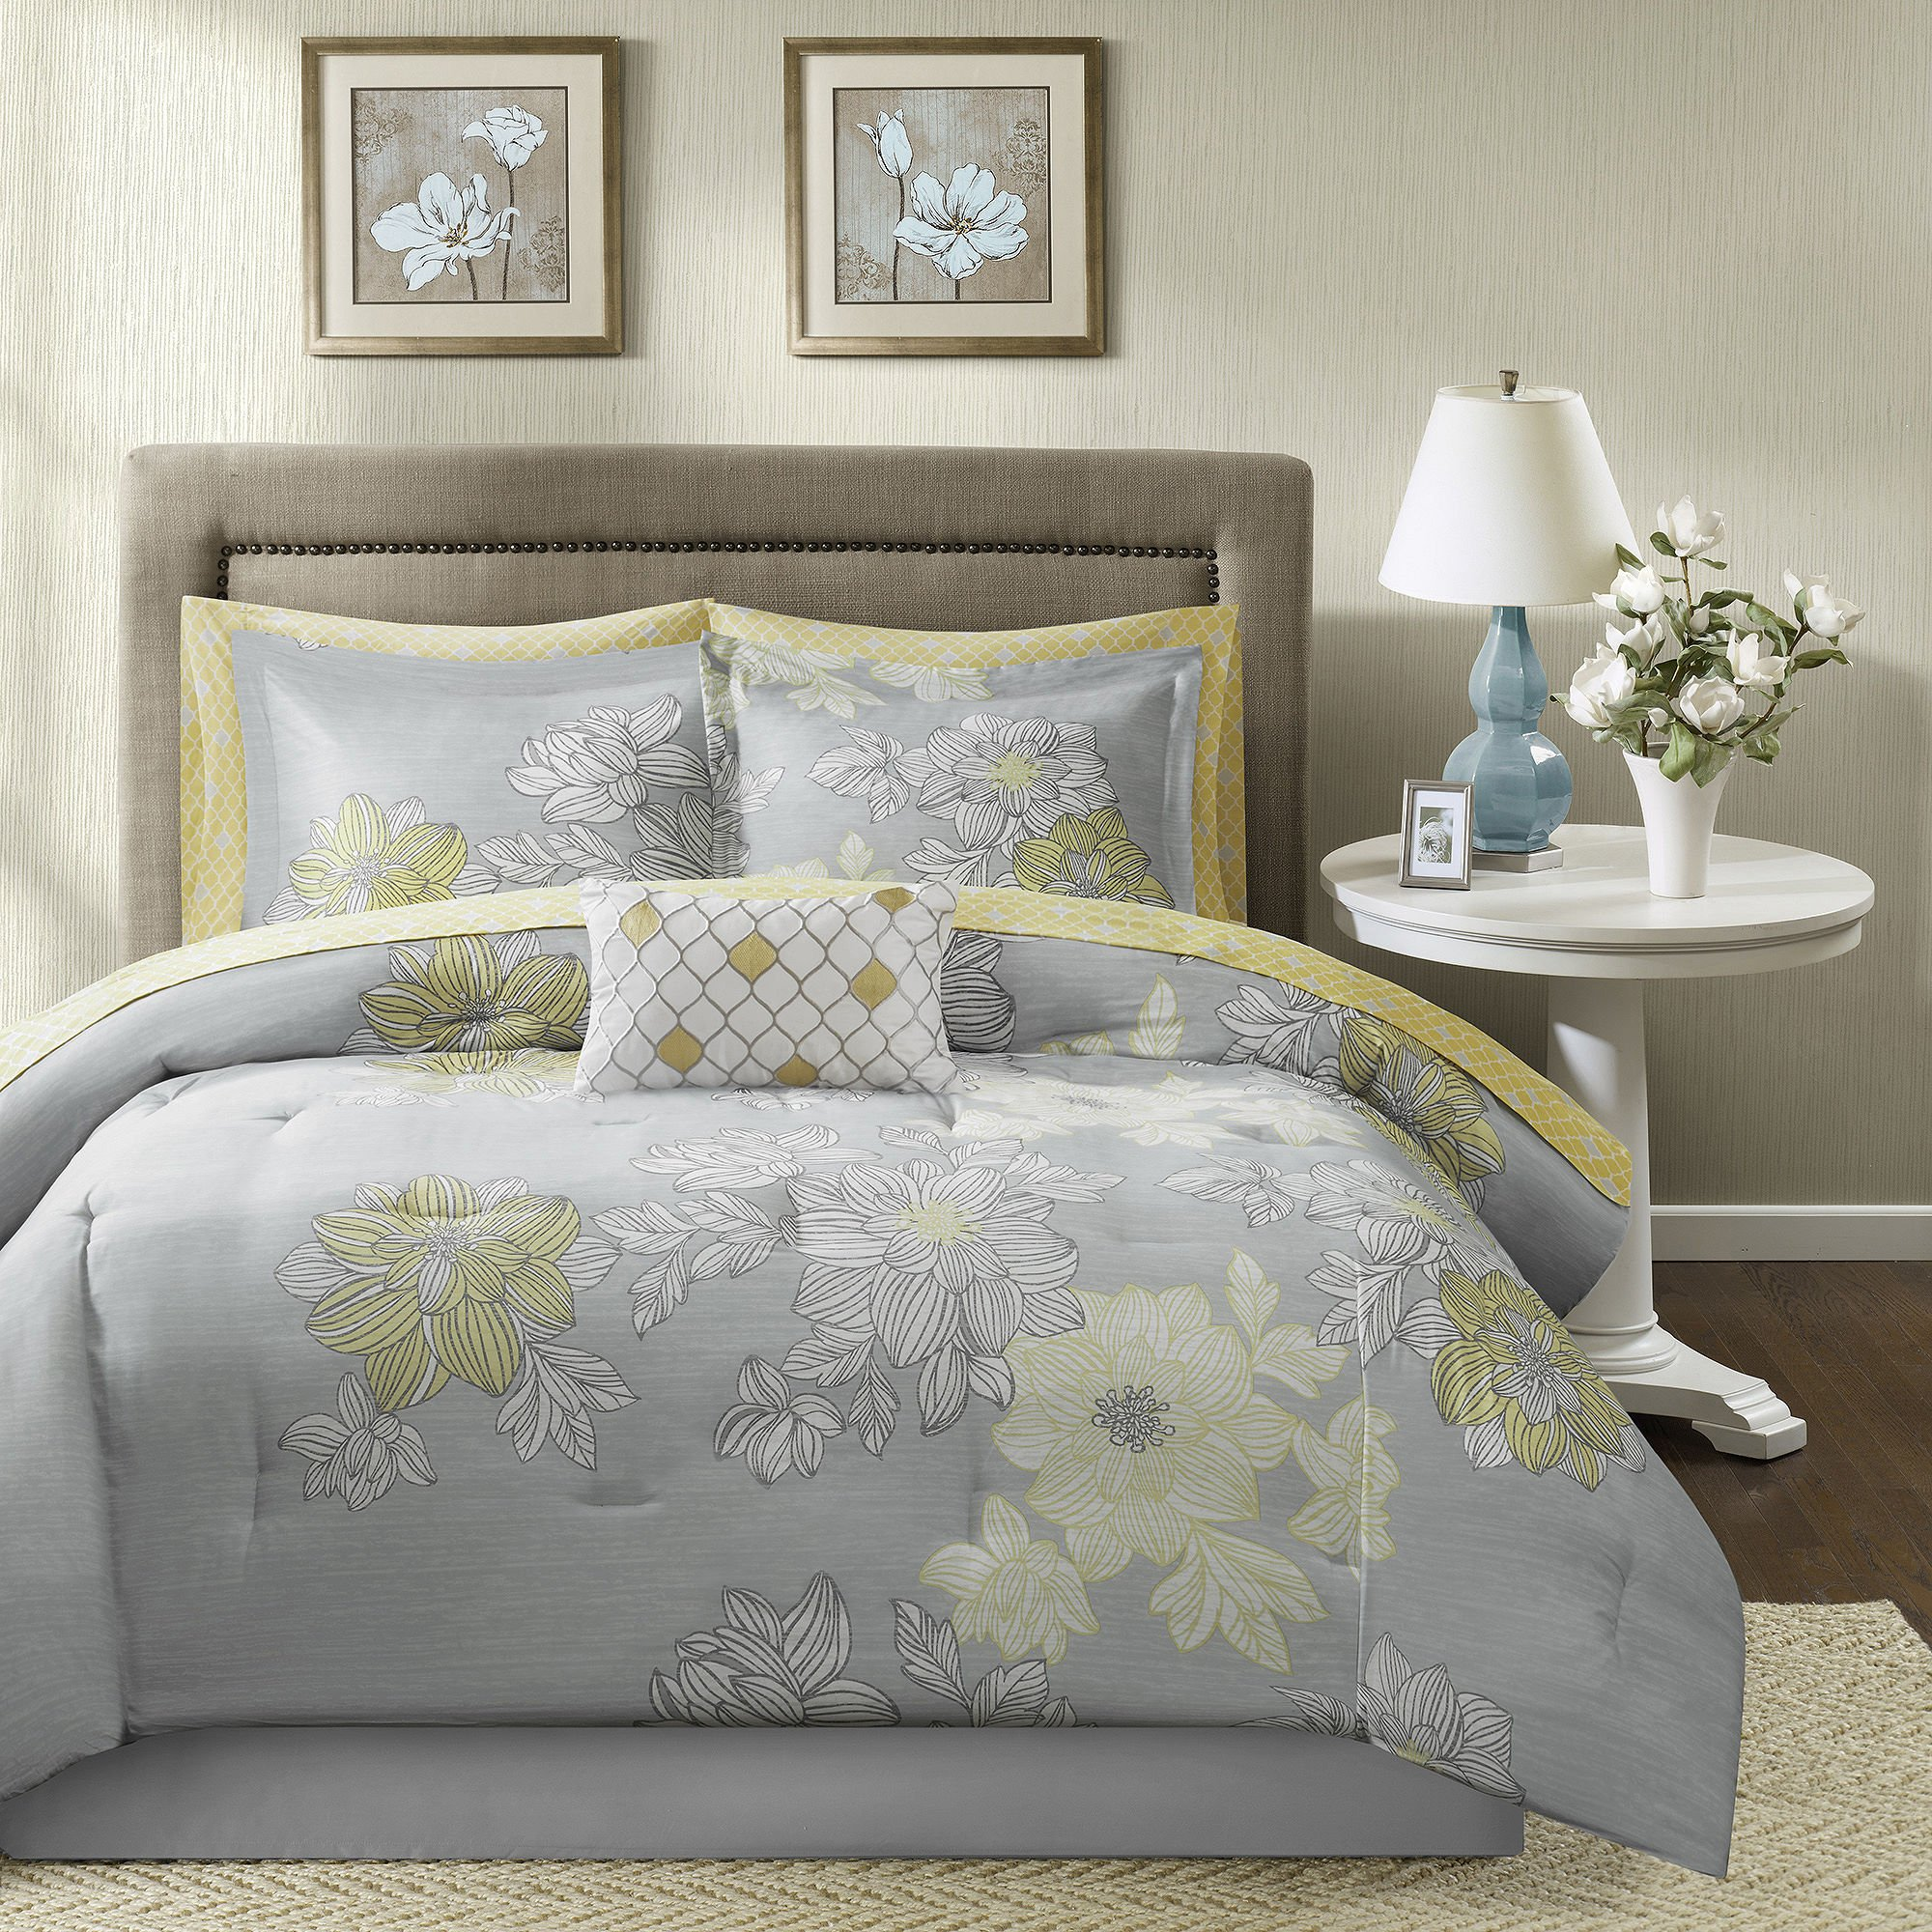 Madison Park Essentials Avalon Twin Size Bed Comforter Set Bed in A Bag - Grey, Yellow, Floral – 7 Pieces Bedding Sets – Ultra Soft Microfiber Bedroom Comforters